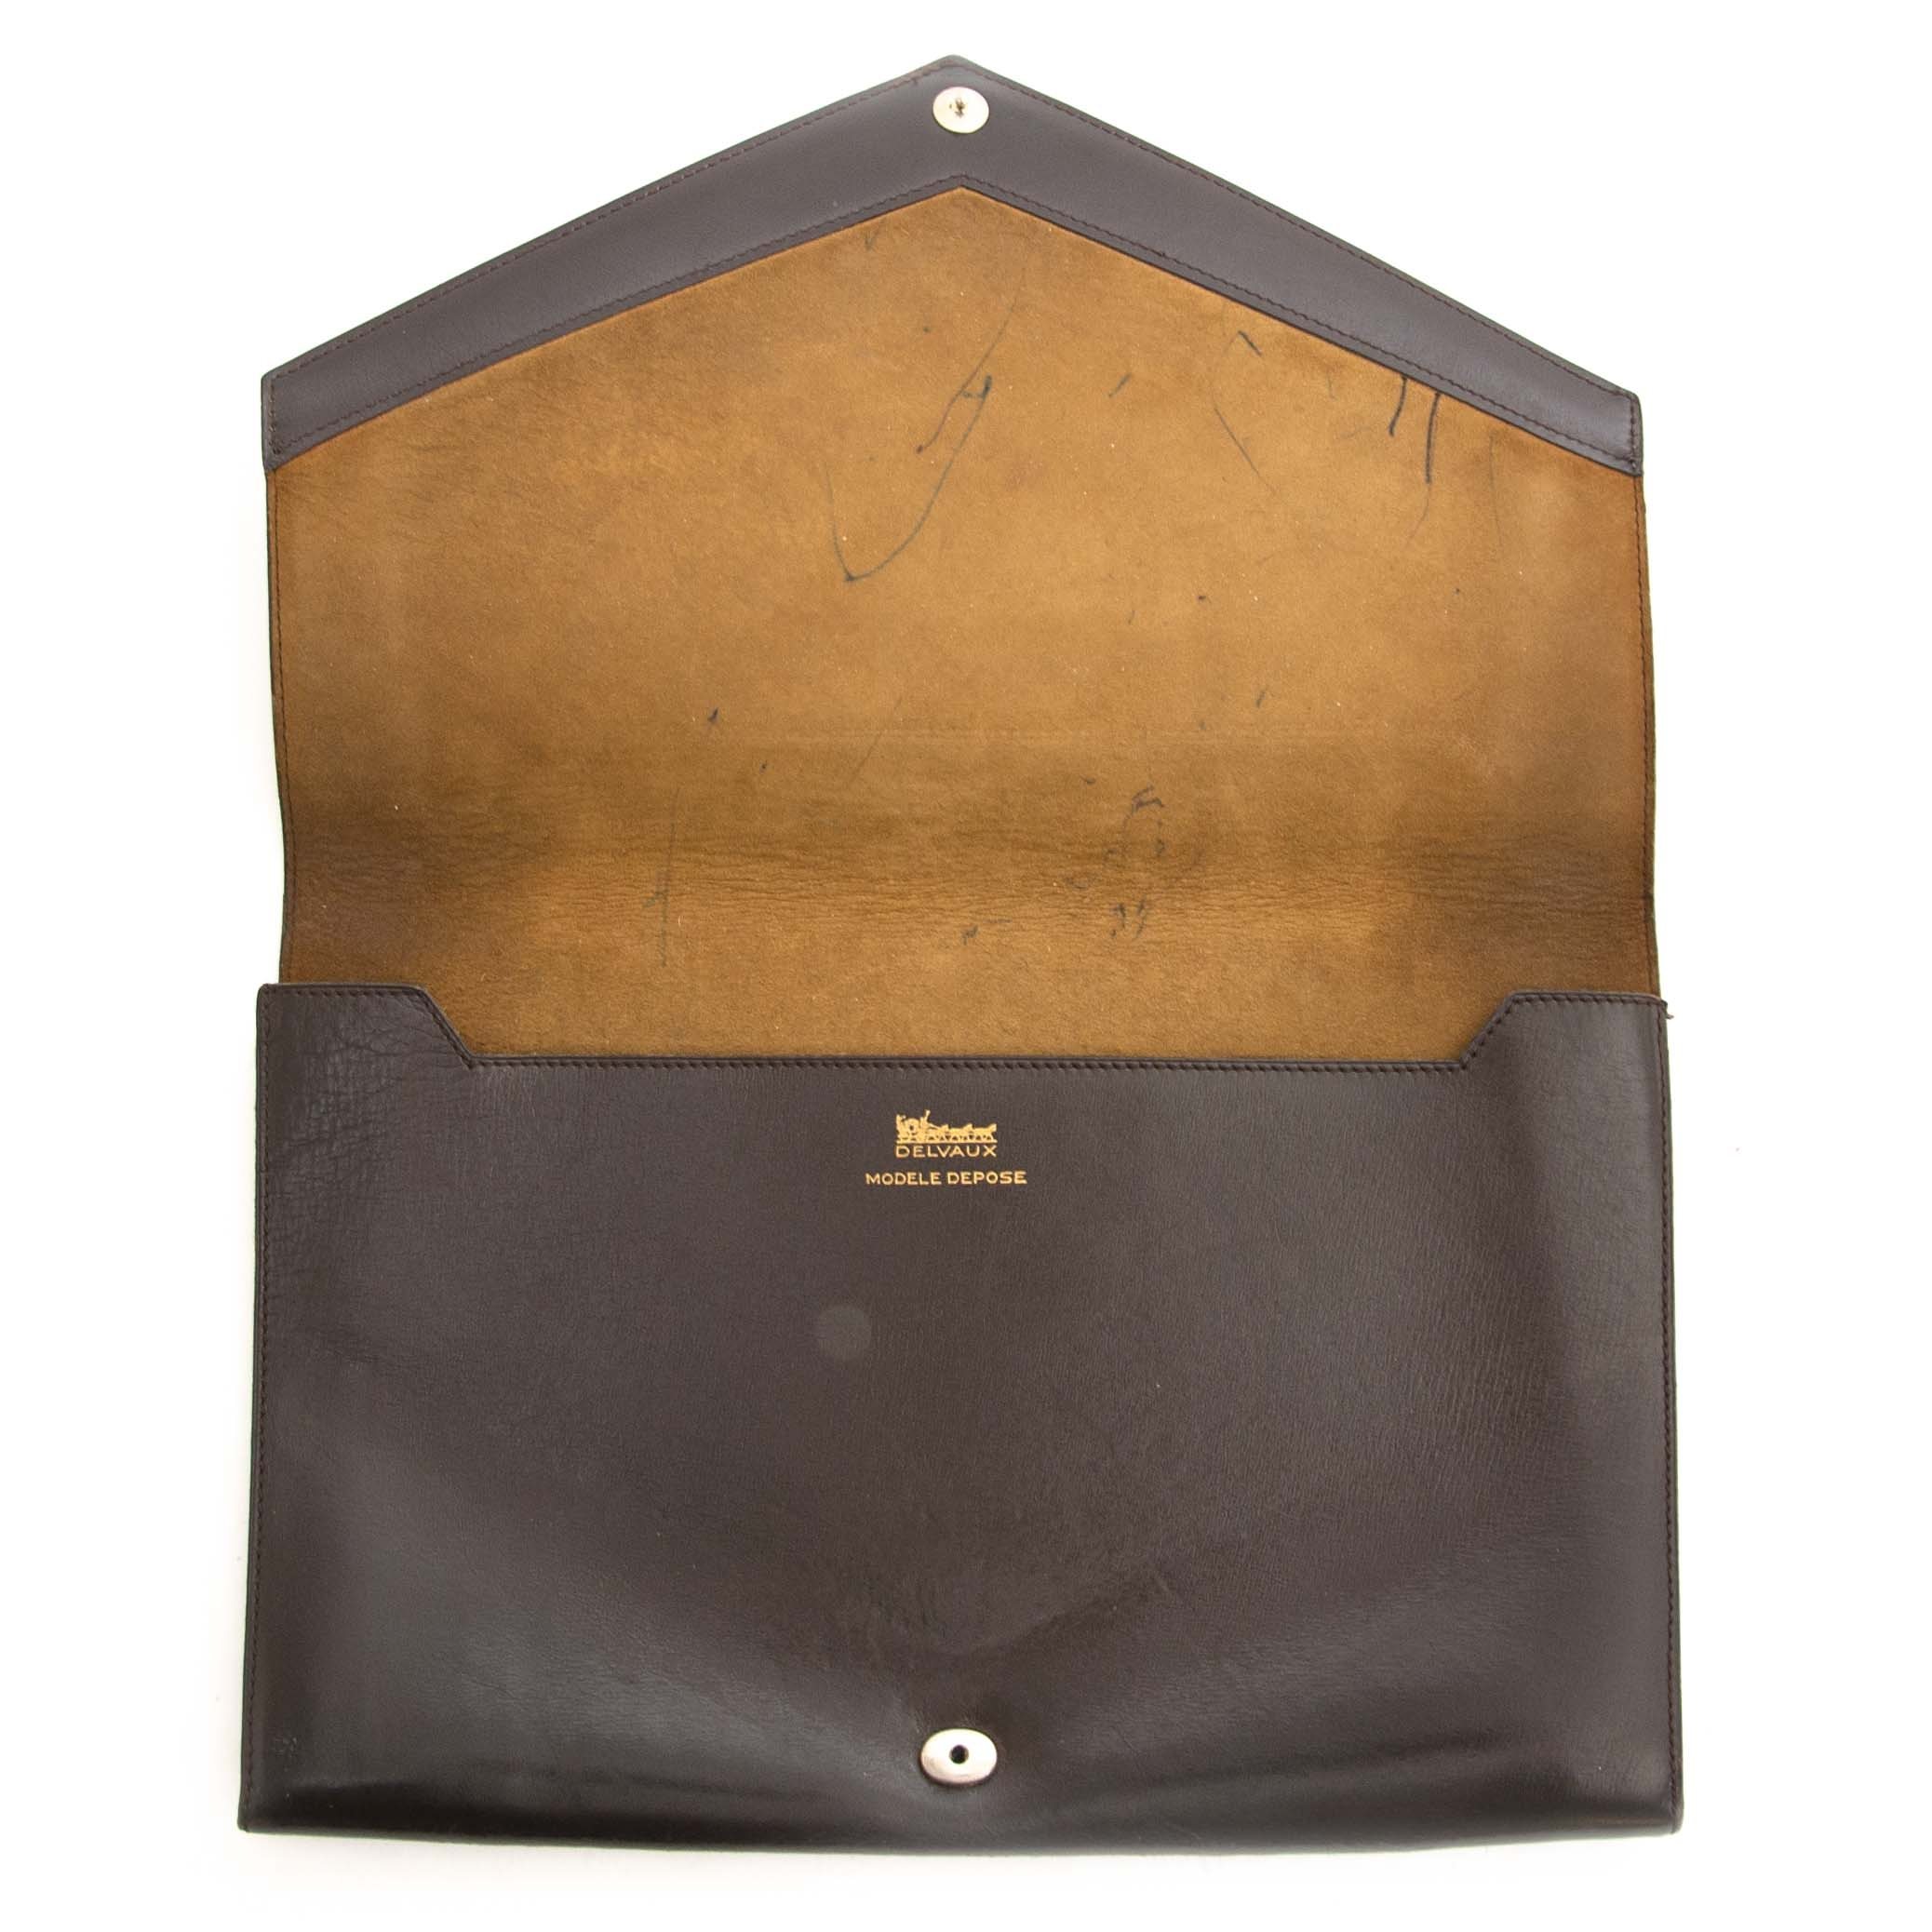 Delvaux Dark Brown Leather Clutch  Buy authentic secondhand Delvaux Clutch at the right price at Labellov vintage webshop. Safe and secure shopping. Koop authentieke tweedehands Delvaux clutch met juiste prijs bij LabelLOV.